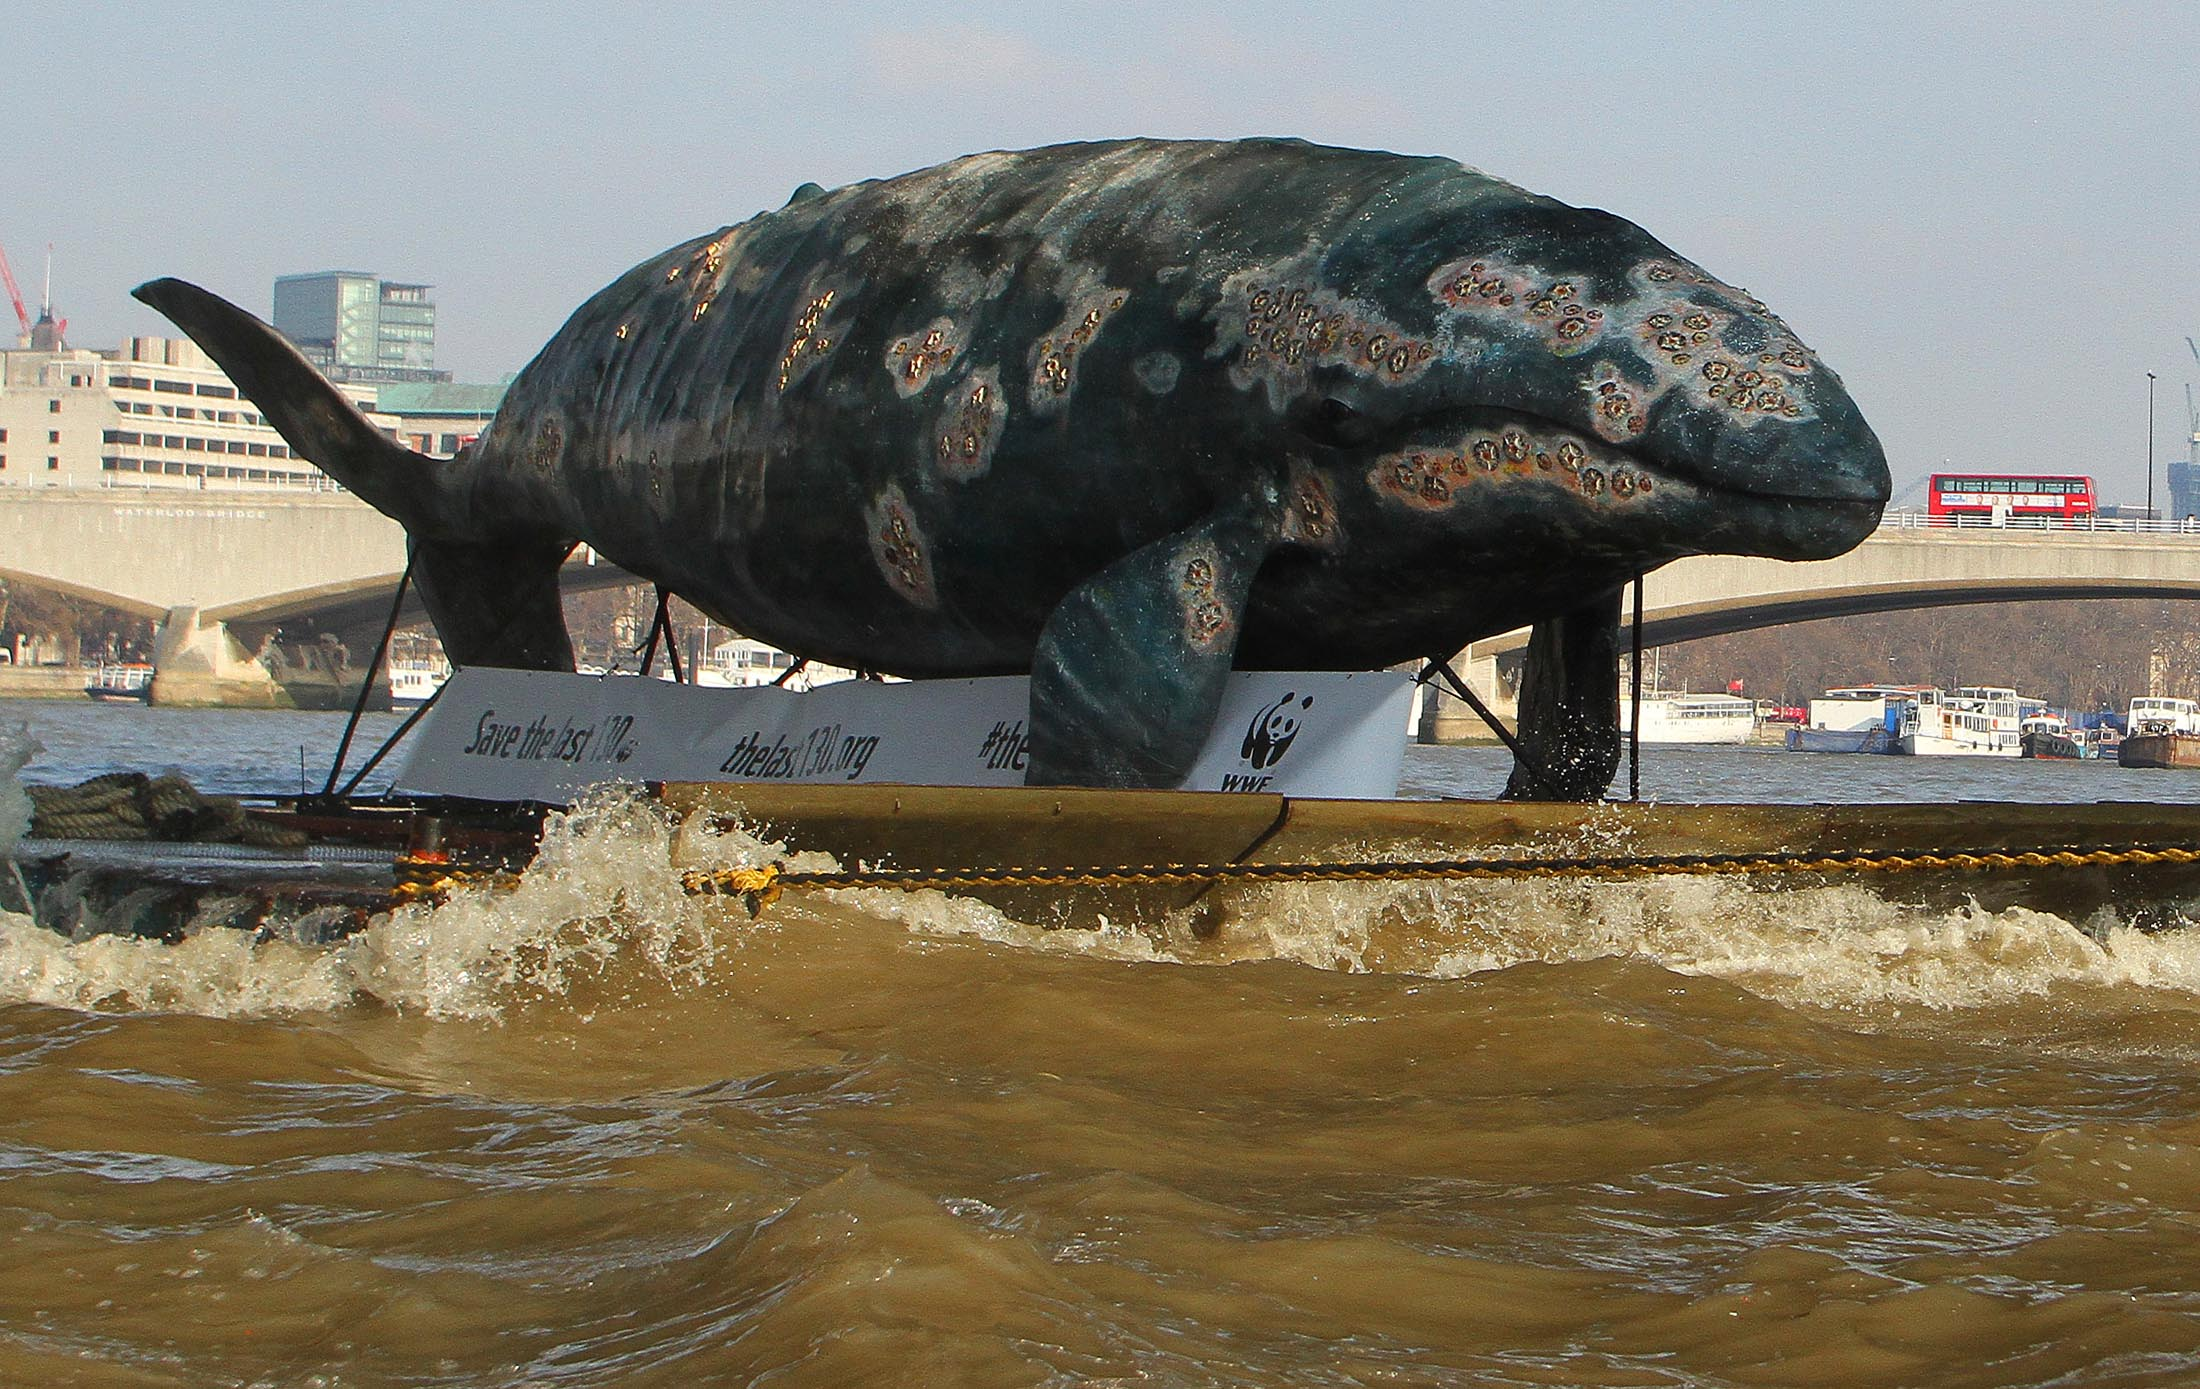 WWF whale on Thames at Houses of Parliament, 7 Feb 2012 - part of western gray whale campaign - © Geoff Caddick / PA